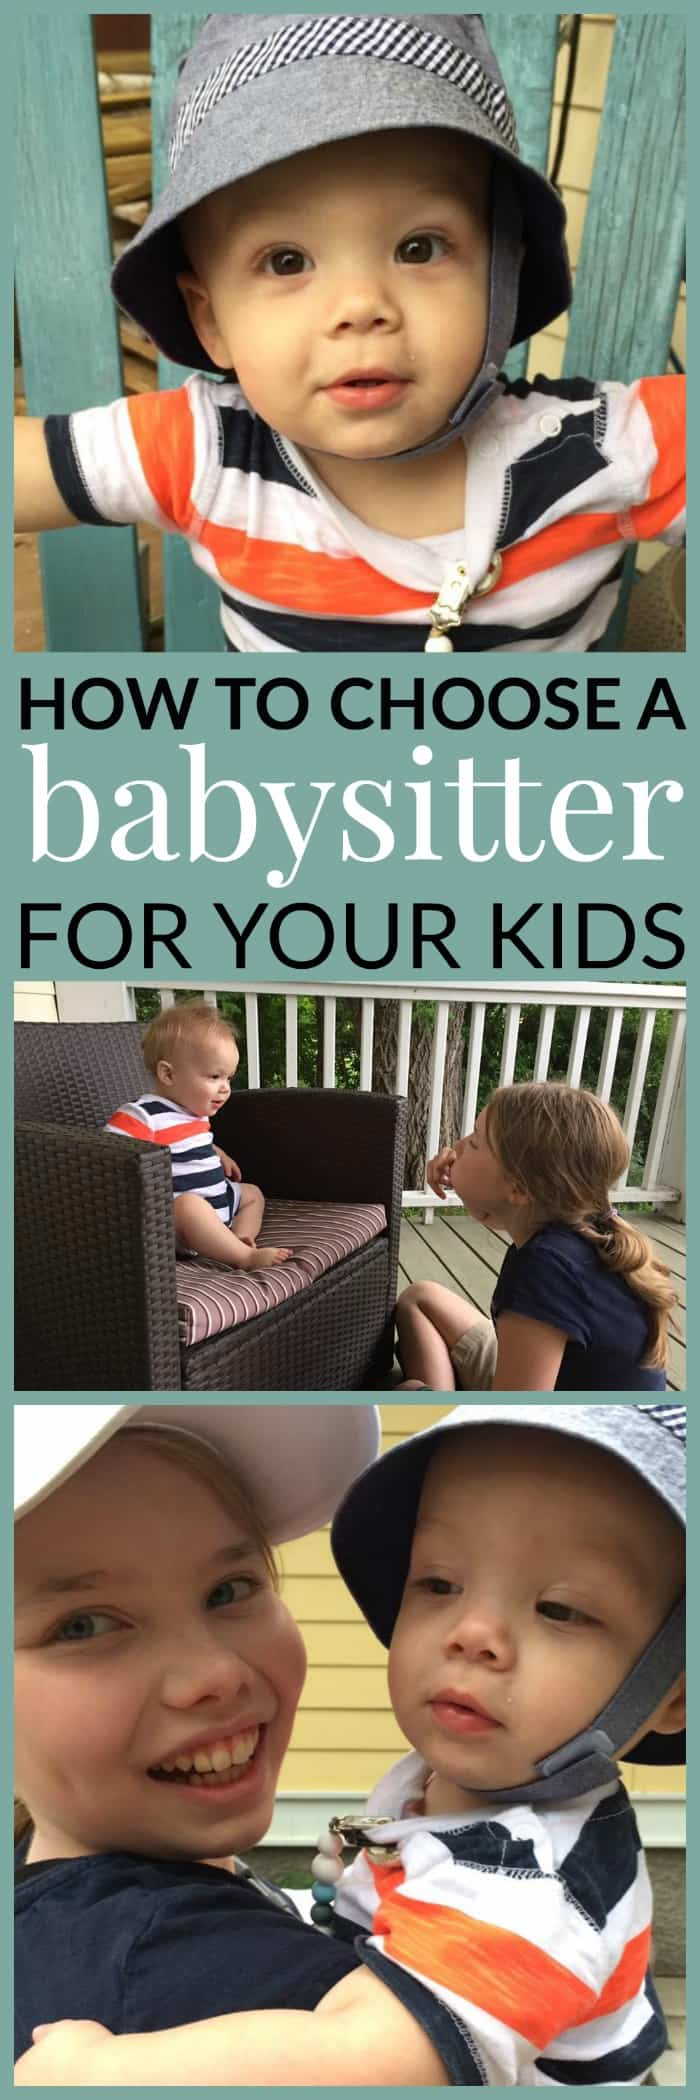 How to find a babysitter for your kids